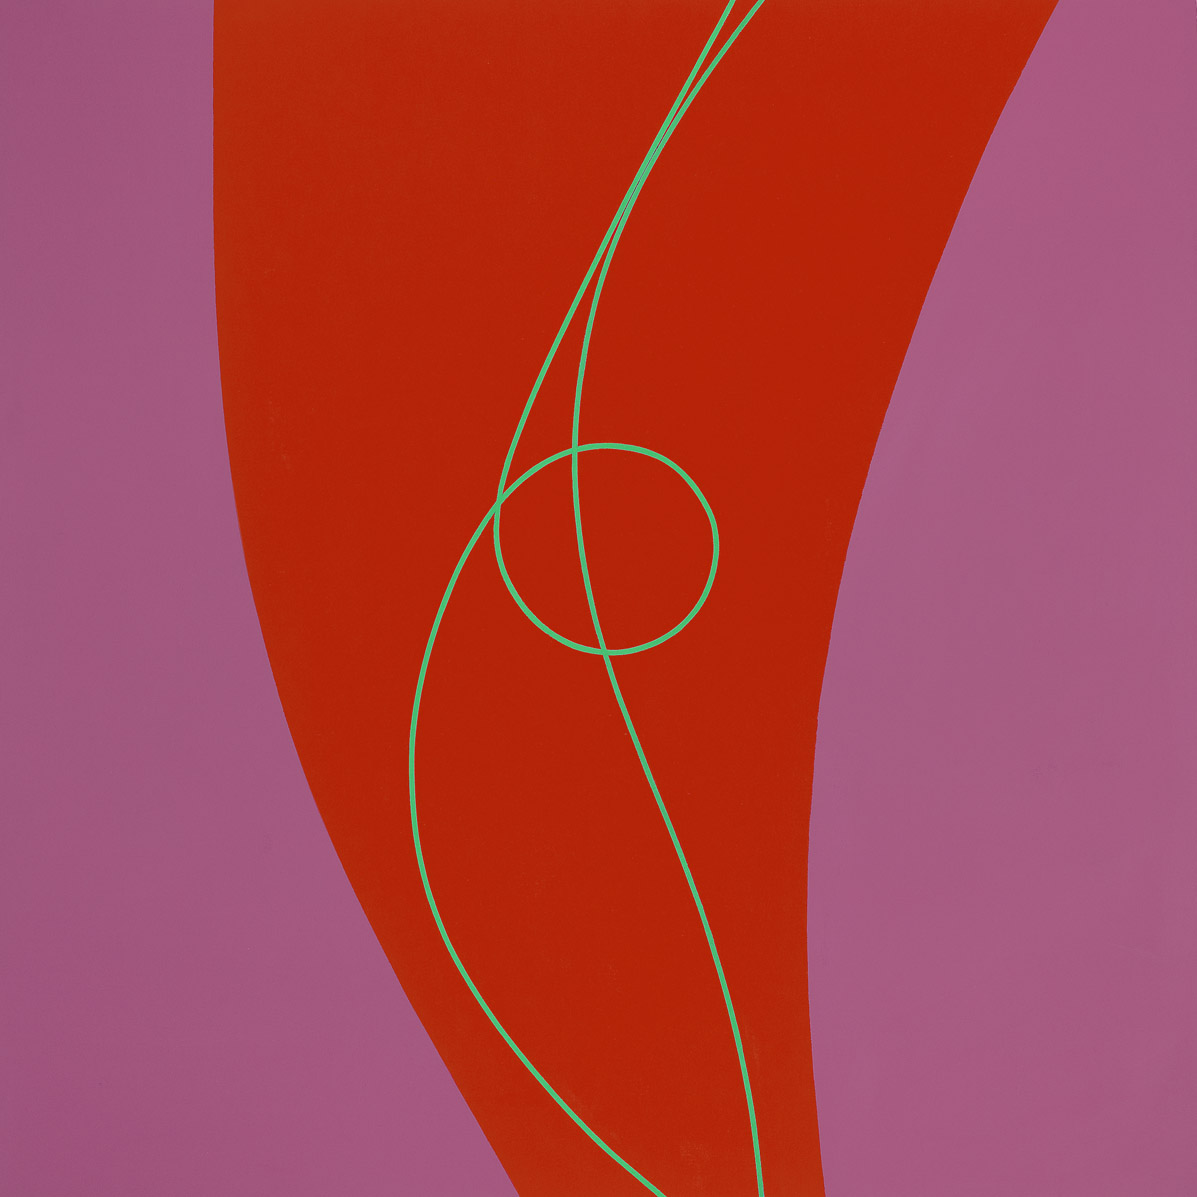 Untitled , 1972  acrylic on canvas 60 x 60 inches; 152.4 x 152.4 centimeters